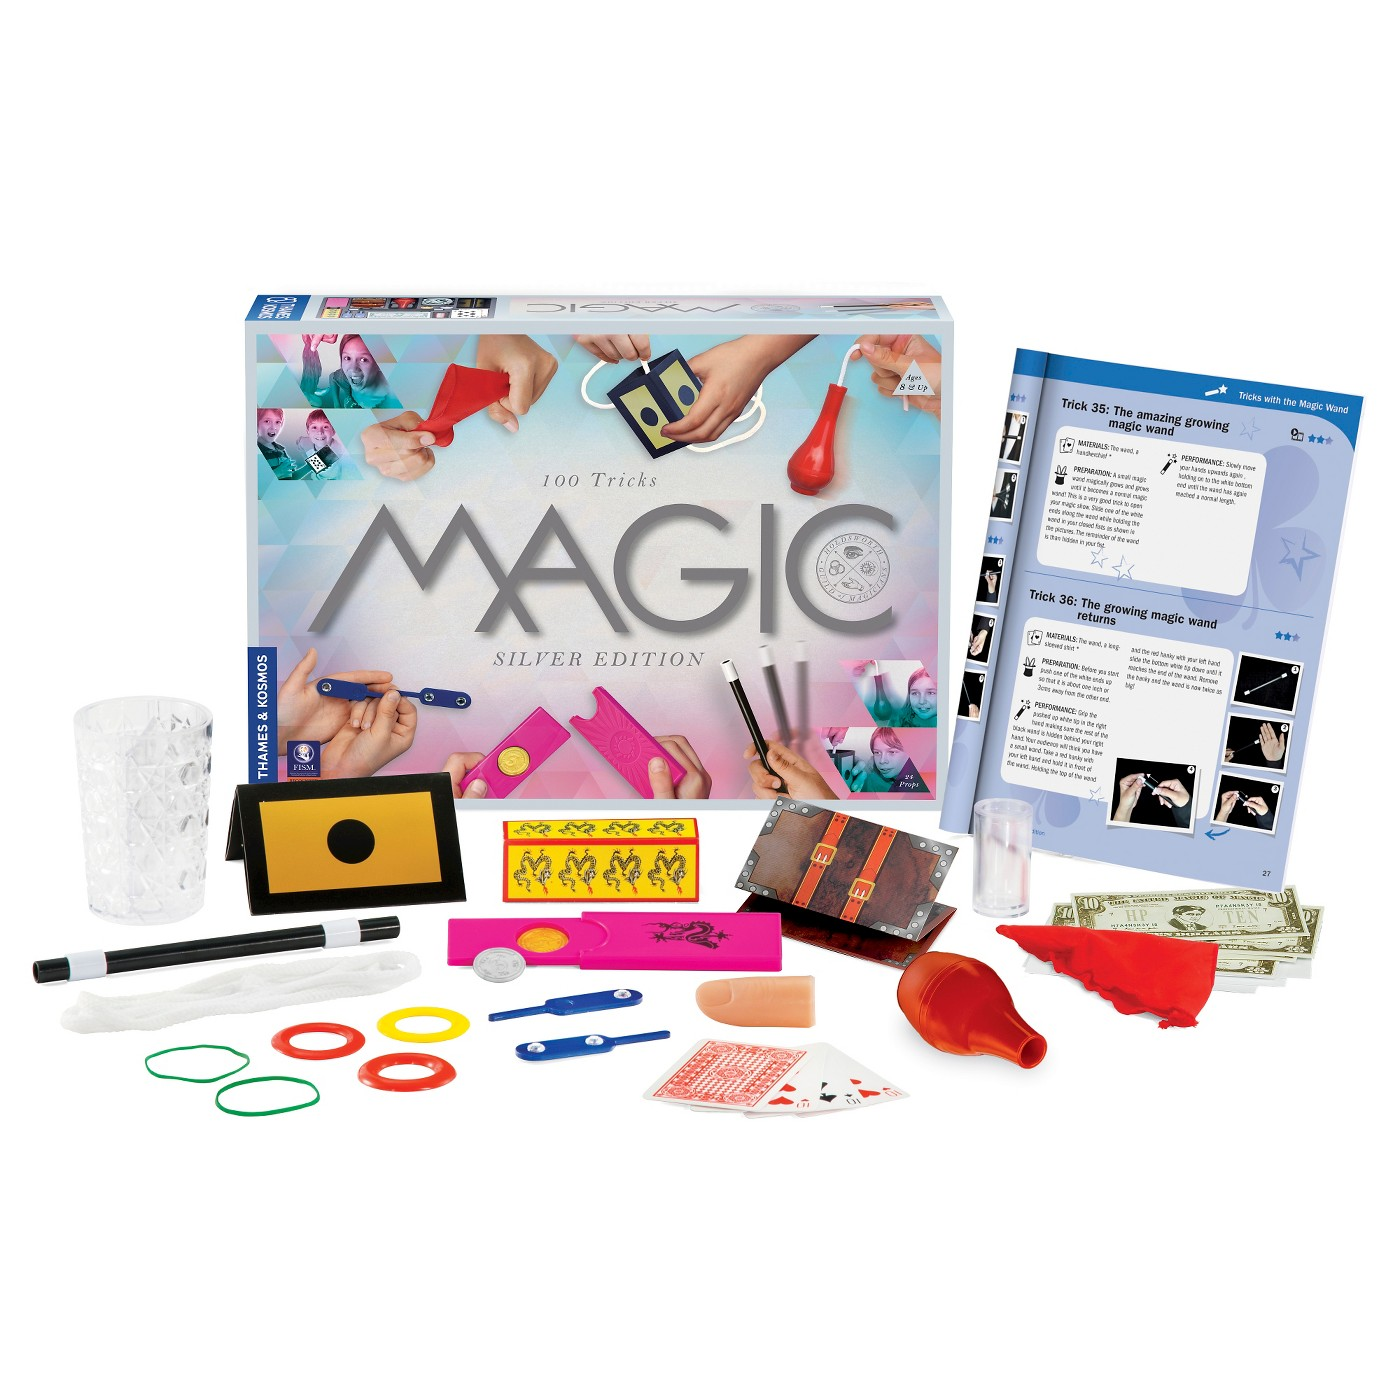 Cool gift ideas for tween girls:  Thames & Kosmos 100 Trick Magic Set